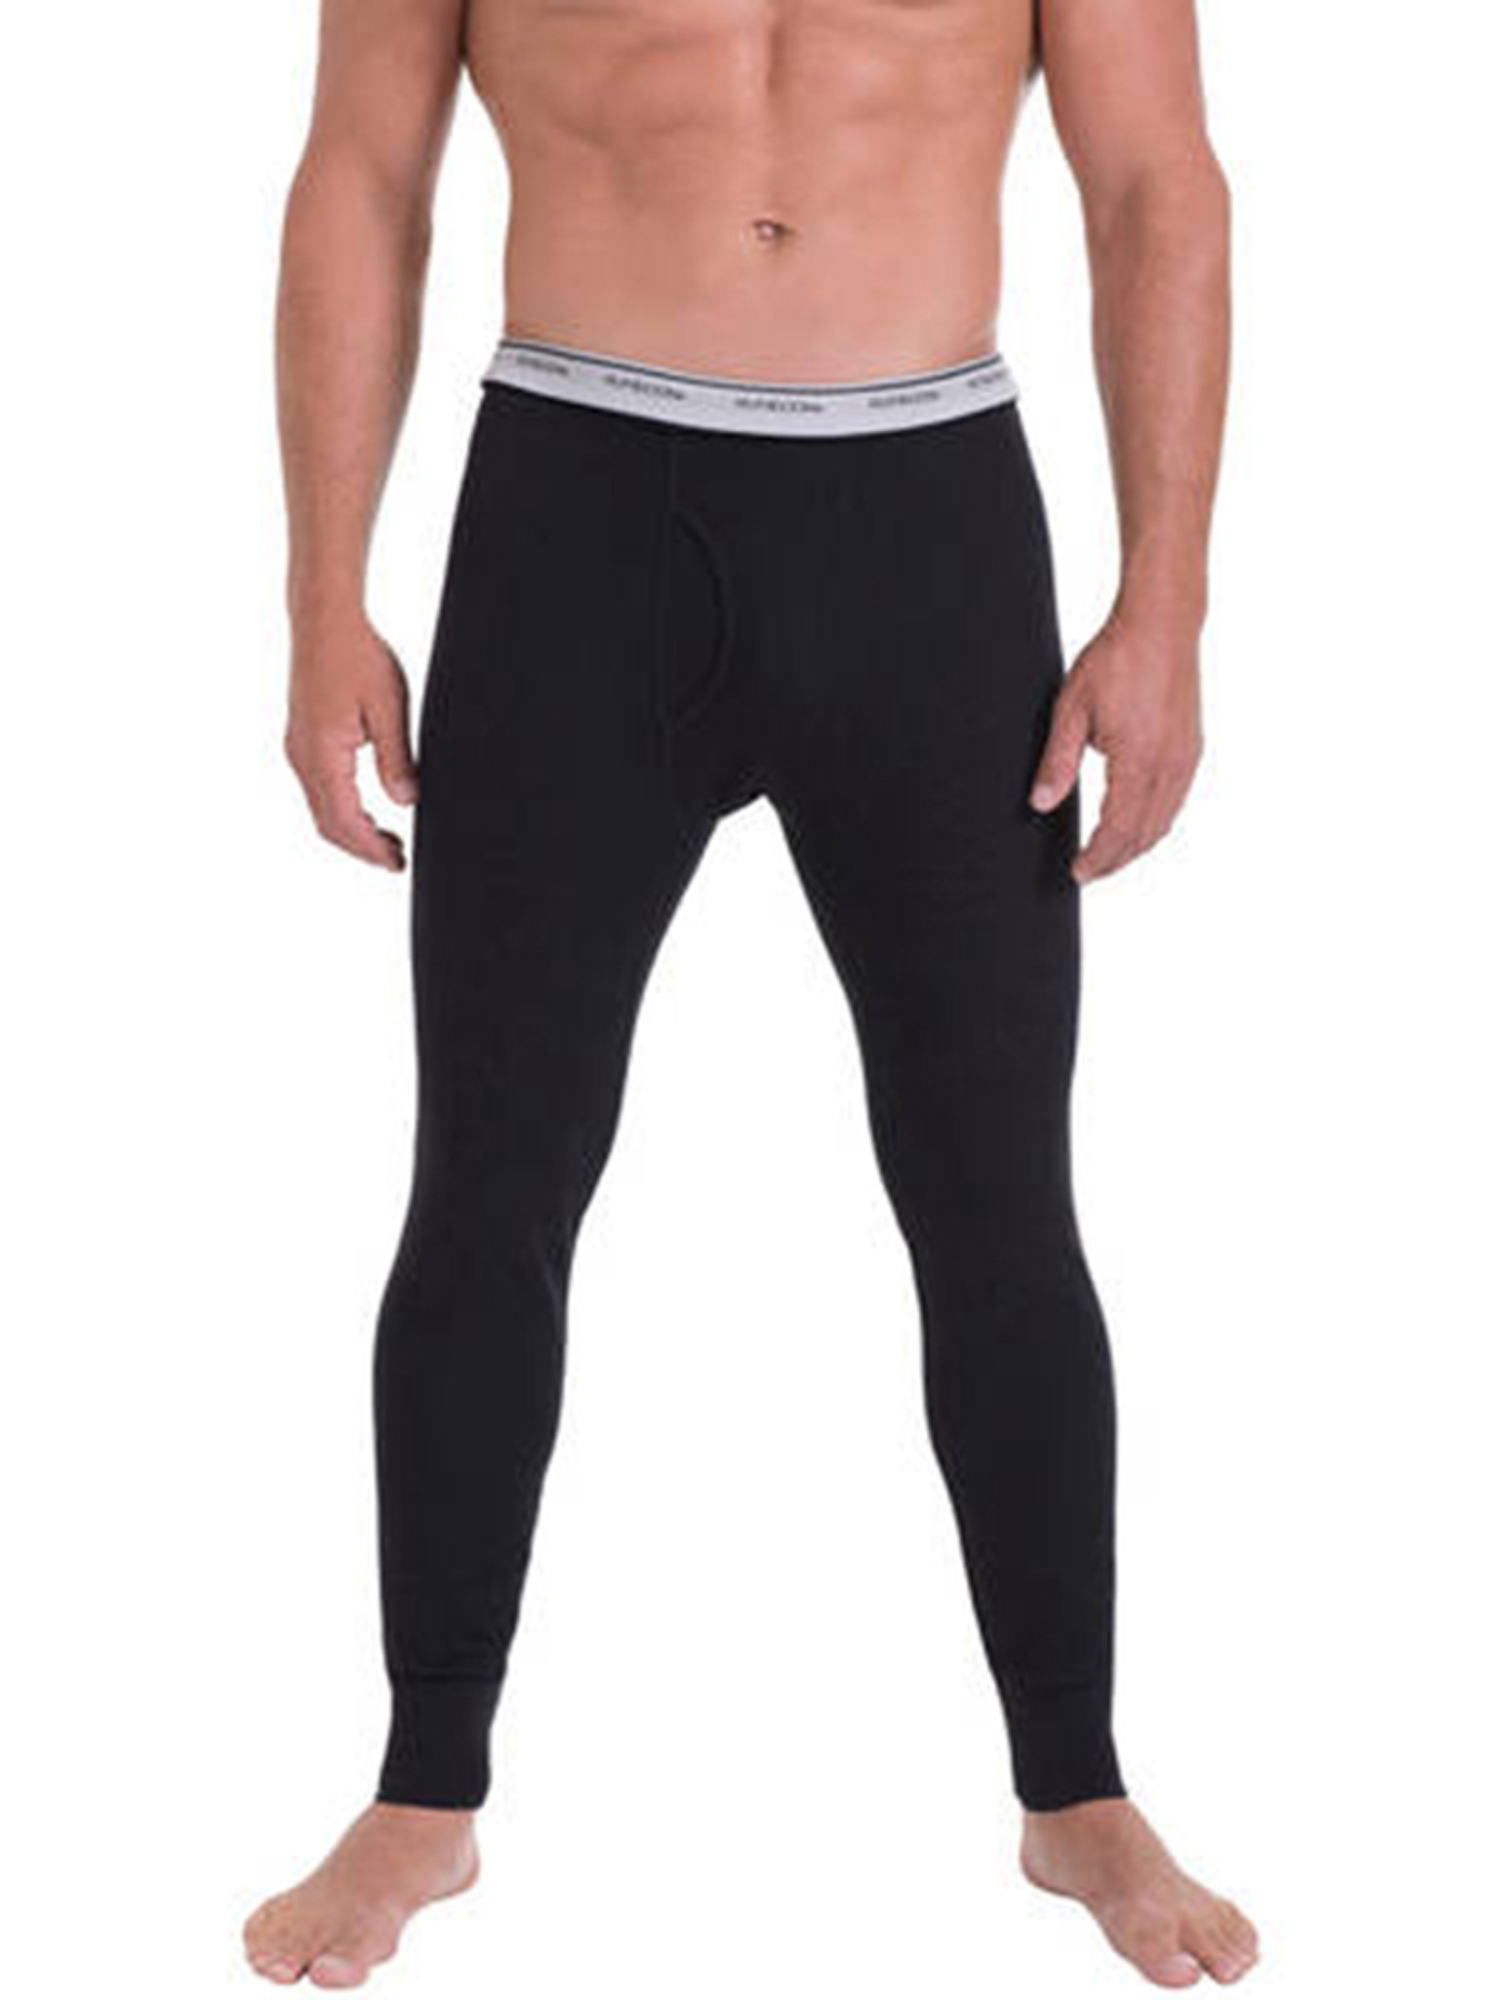 Big Men's Classic Thermal Underwear Bottom by Fruit of the Loom Men's Thermals